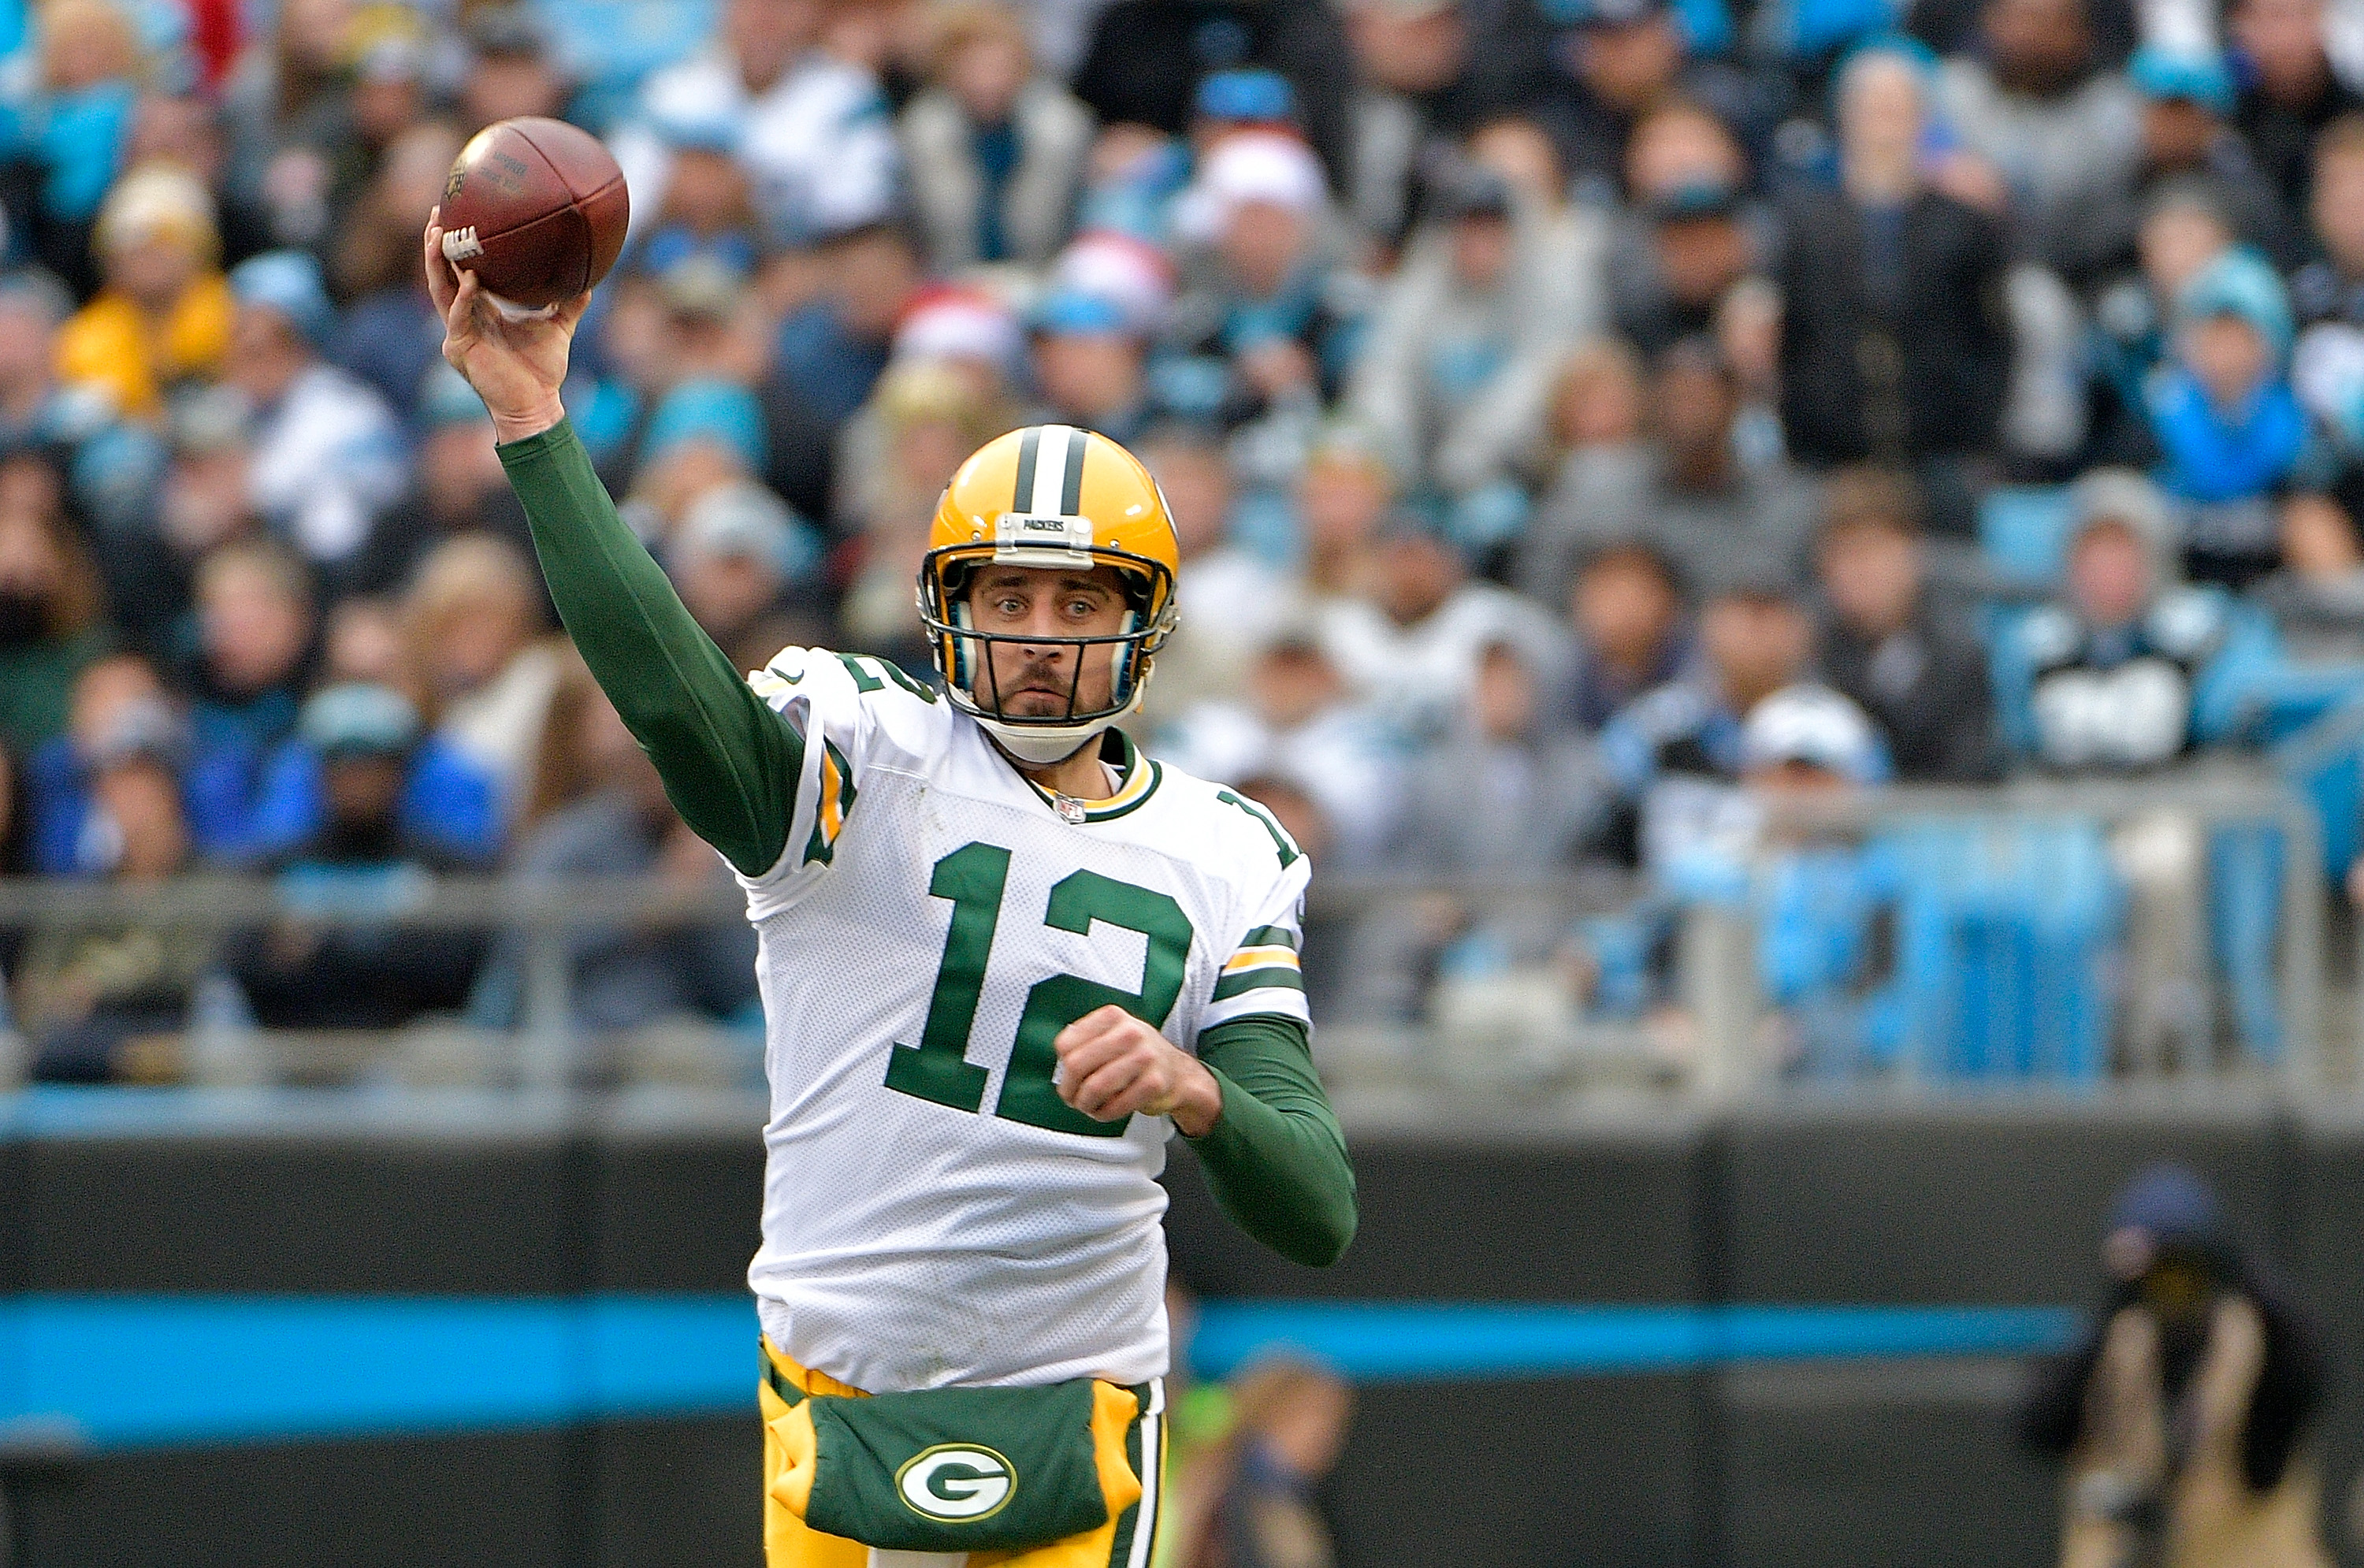 Cleveland Browns Could Have Fixed Their Quarterback Position With Aaron Rodgers